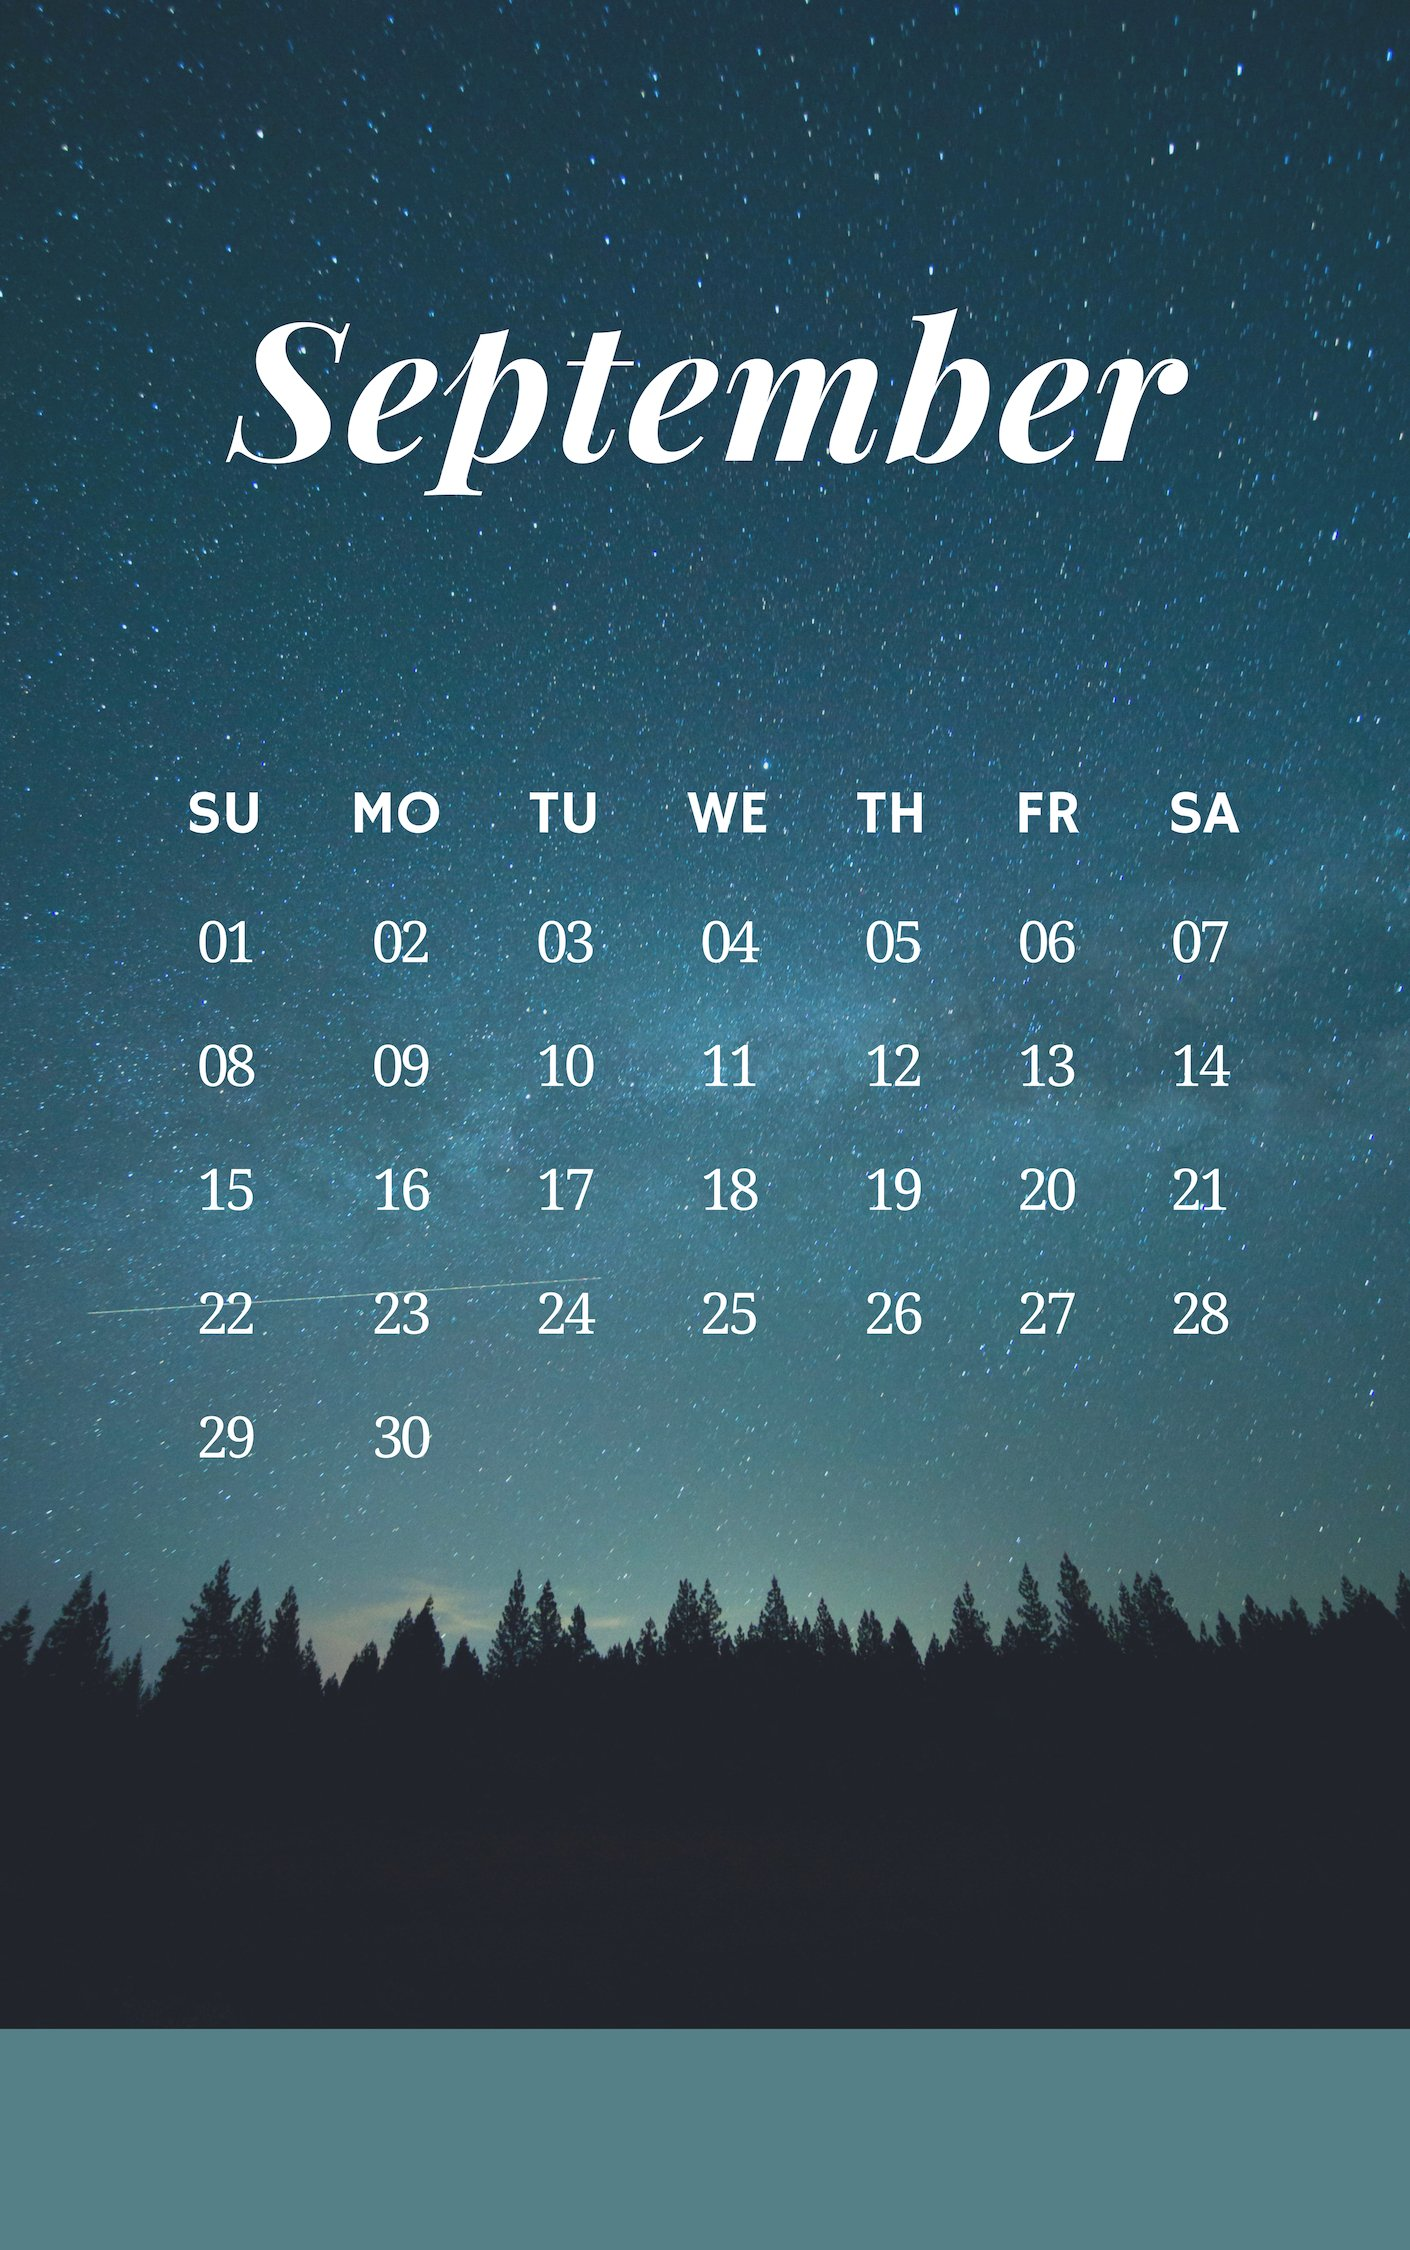 September 2019 iPhone Nature Wallpaper